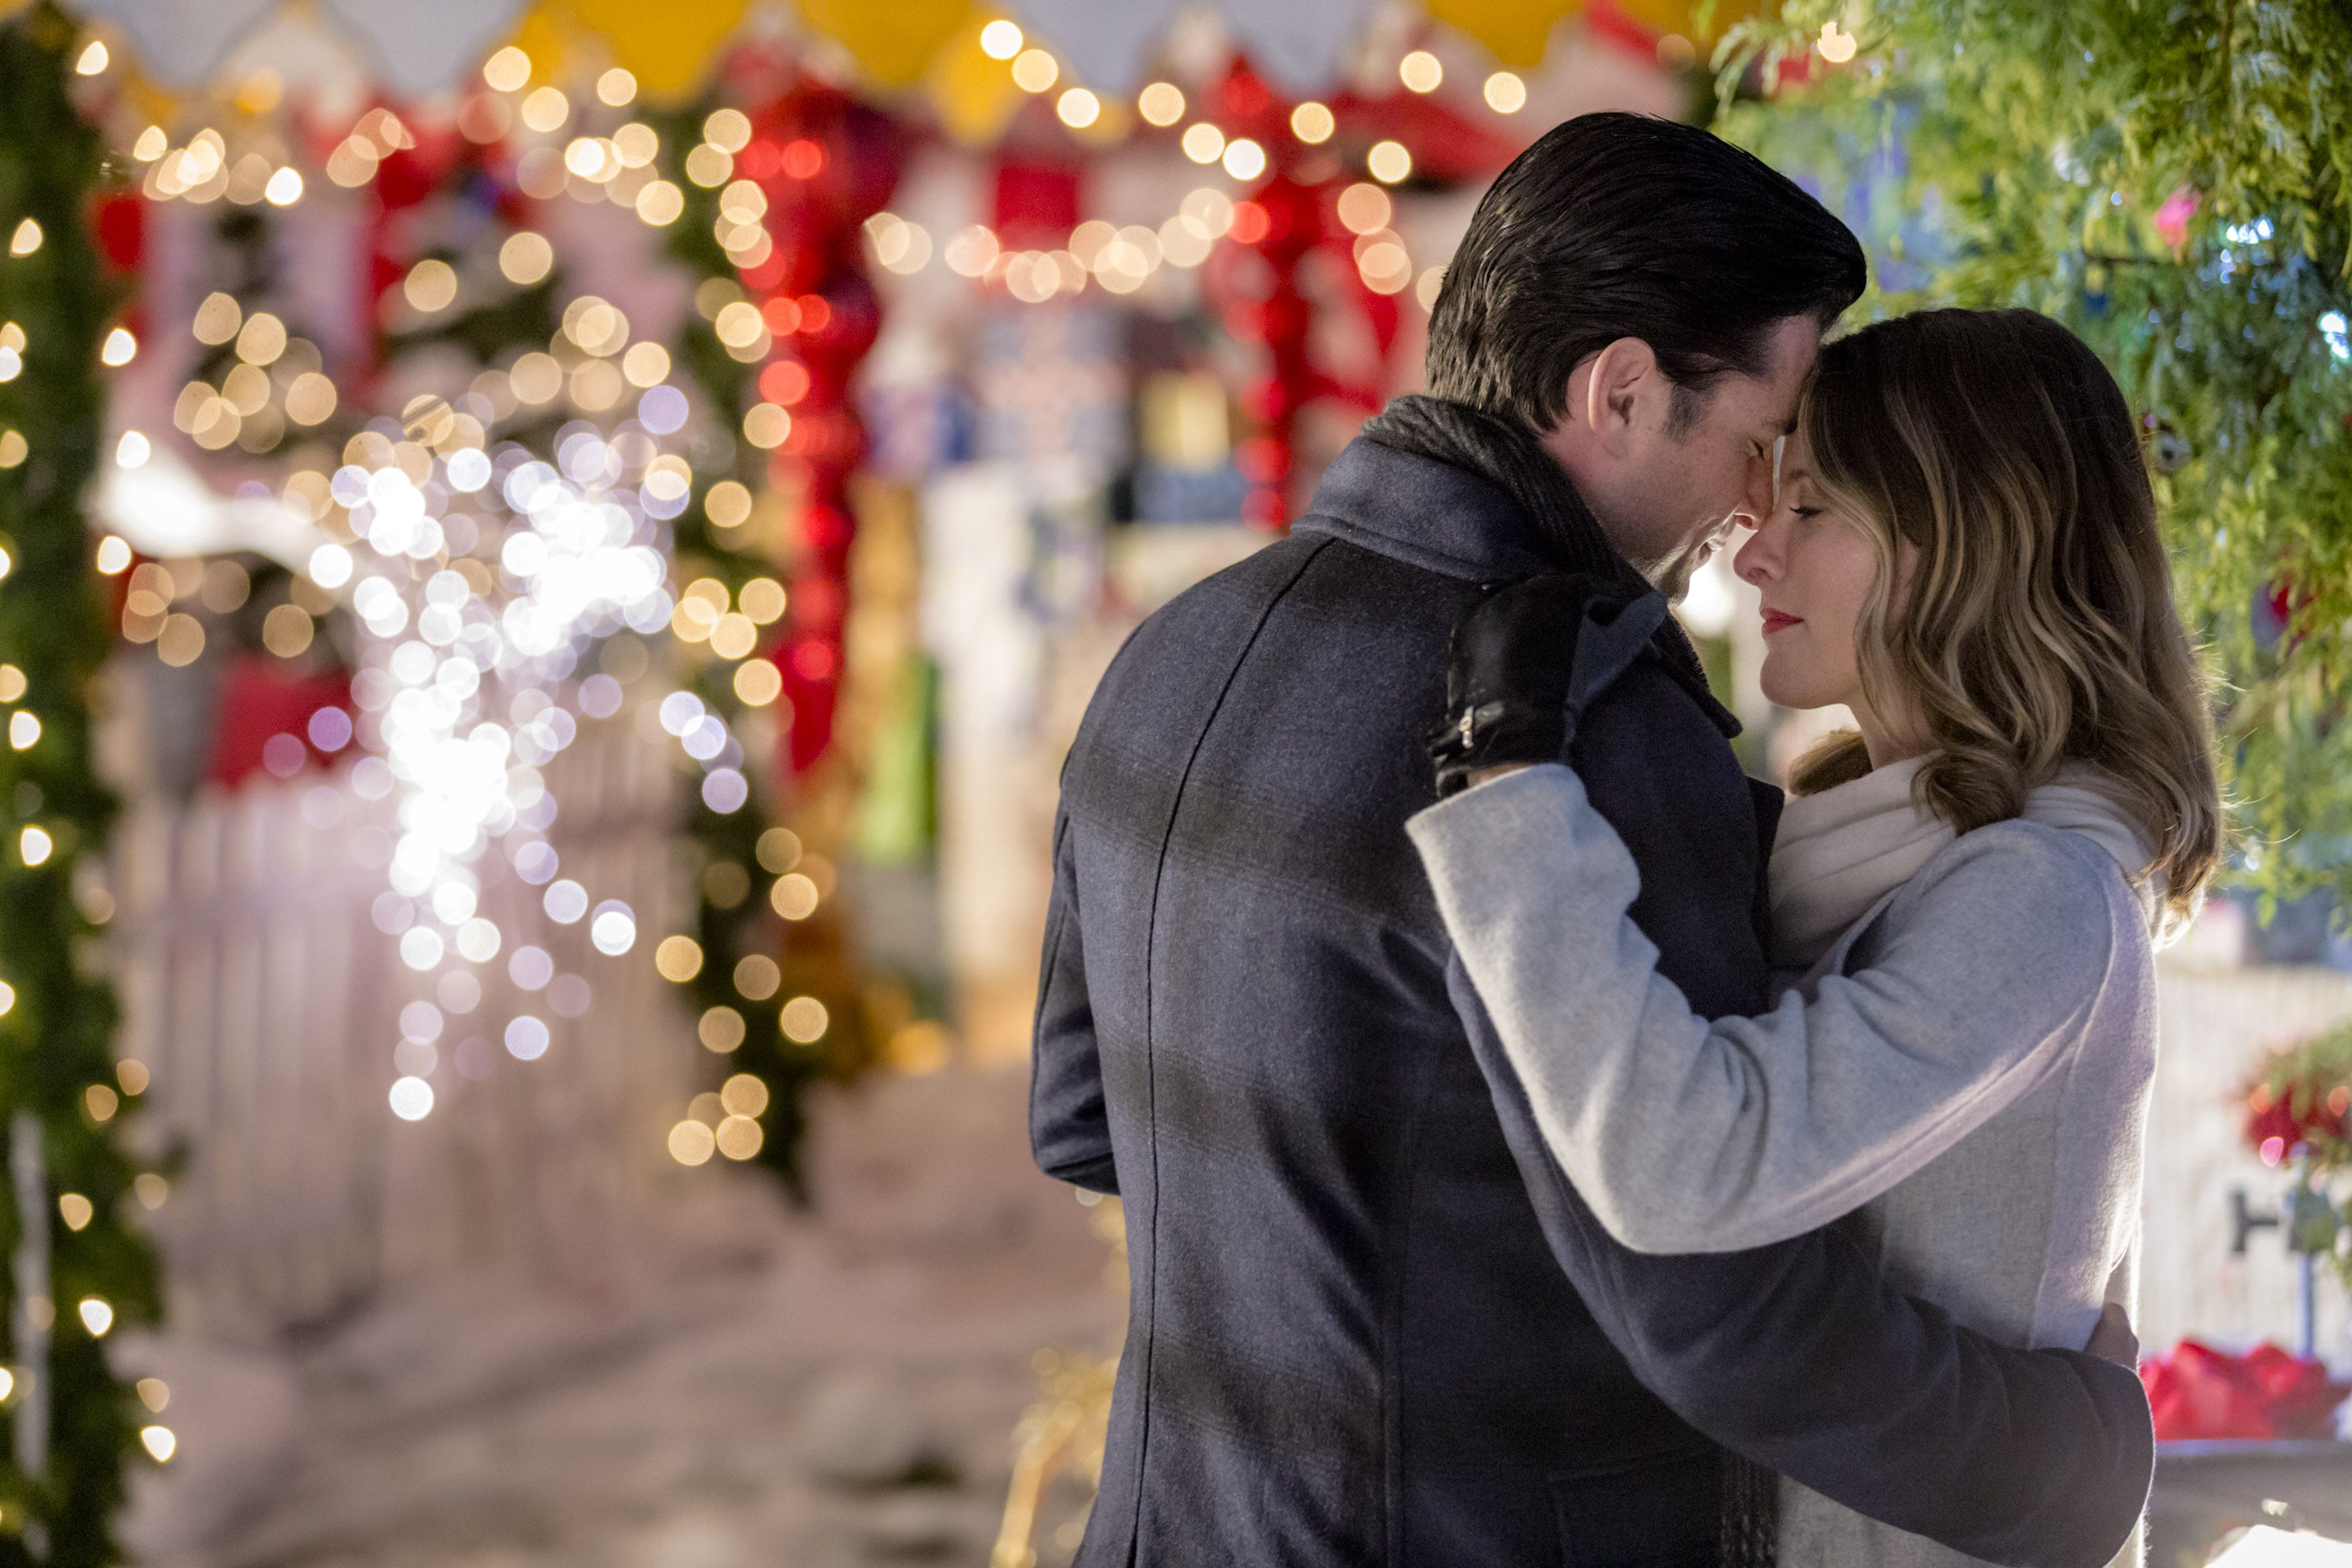 6 Hallmark Christmas Movies Filmed In Small Towns Hallmark